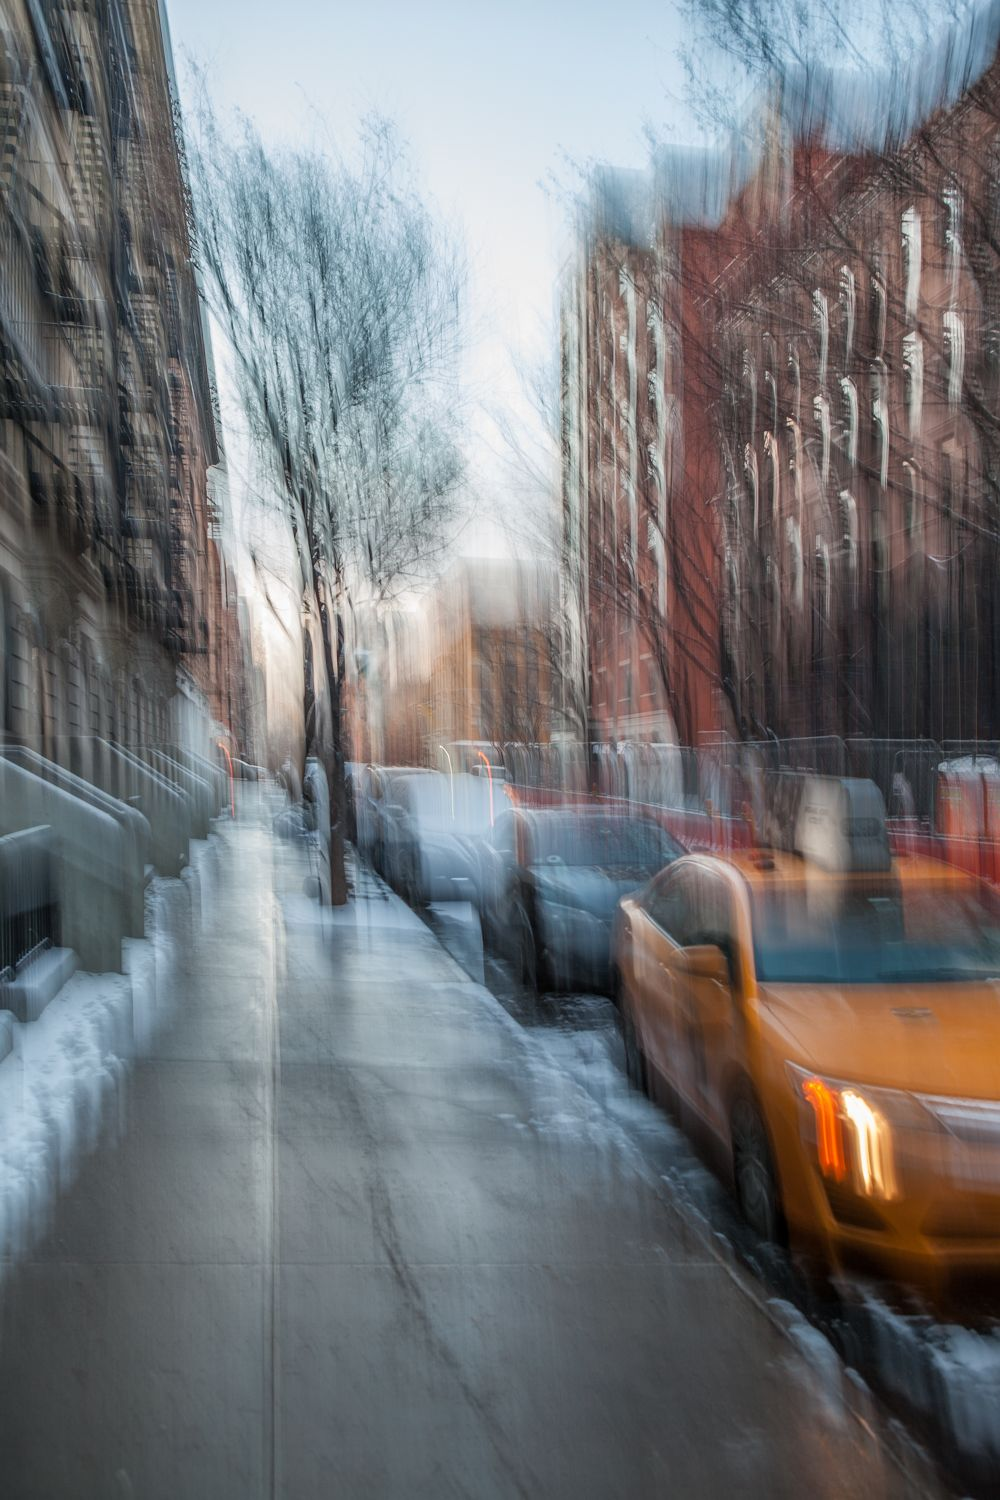 New York Dream 06,Xavier Dumoulin,Photography